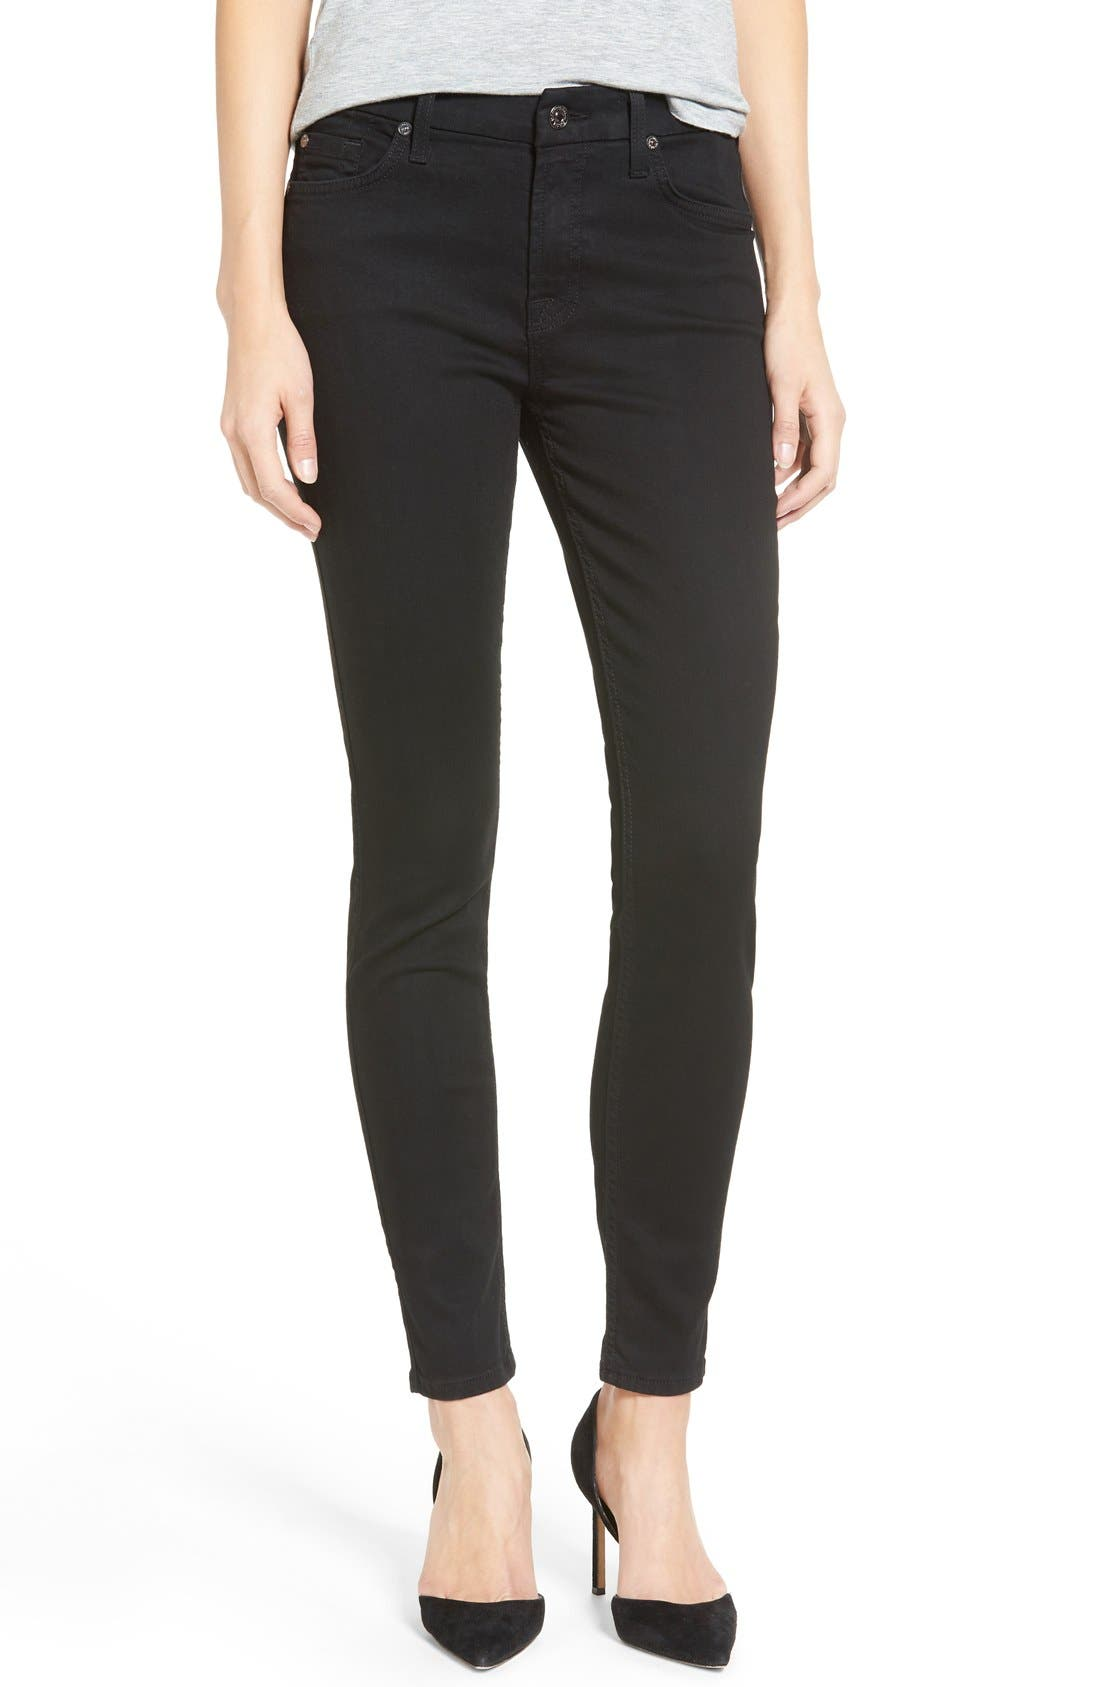 b(air) Ankle Skinny Jeans,                         Main,                         color, 004